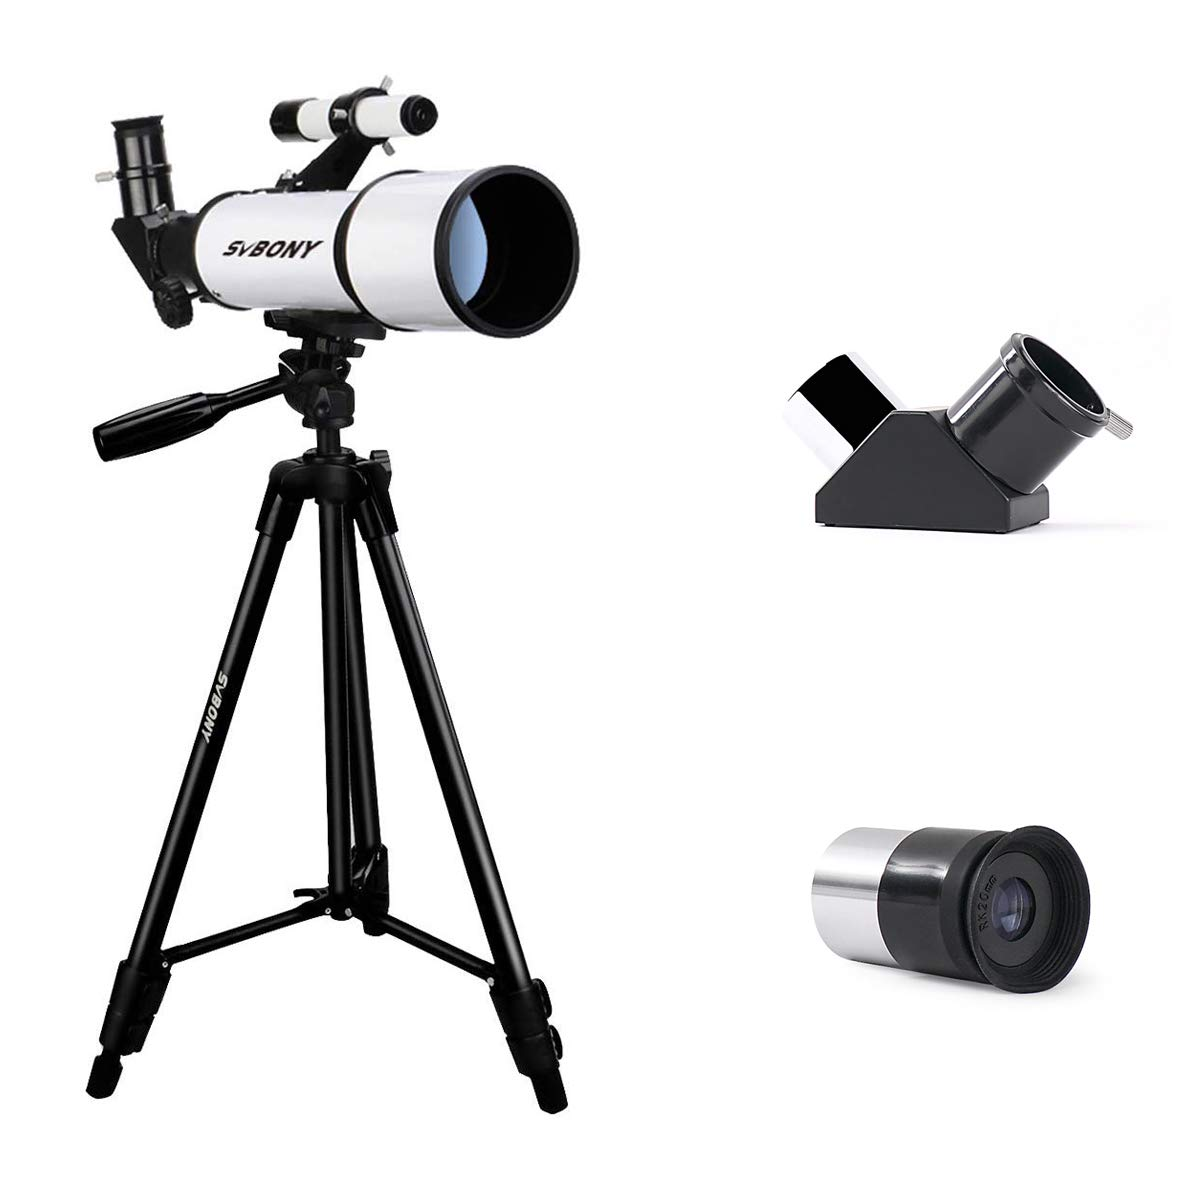 SVBONY SV501 Telescope Travel Scope 70mm FMC Astronomical Refractor Telescope for Adults Beginners Kids Portable Telescope with Adjustable Tripod and Finder Scope by SVBONY